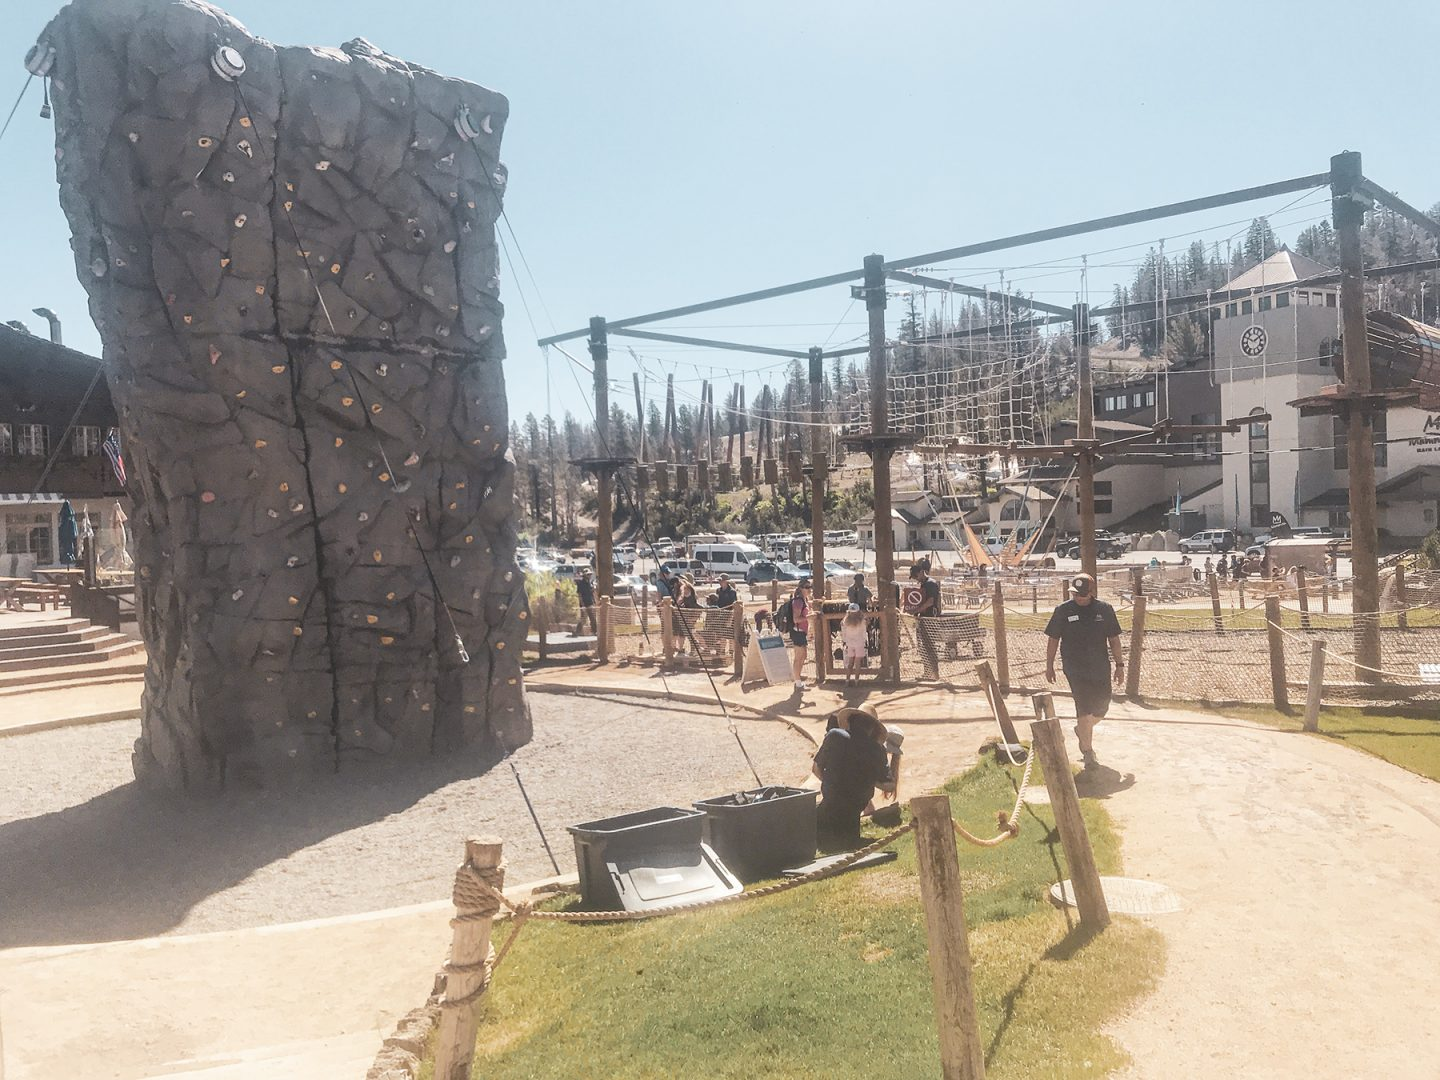 Mammoth Mountain Adventure Center Rock climbing wall